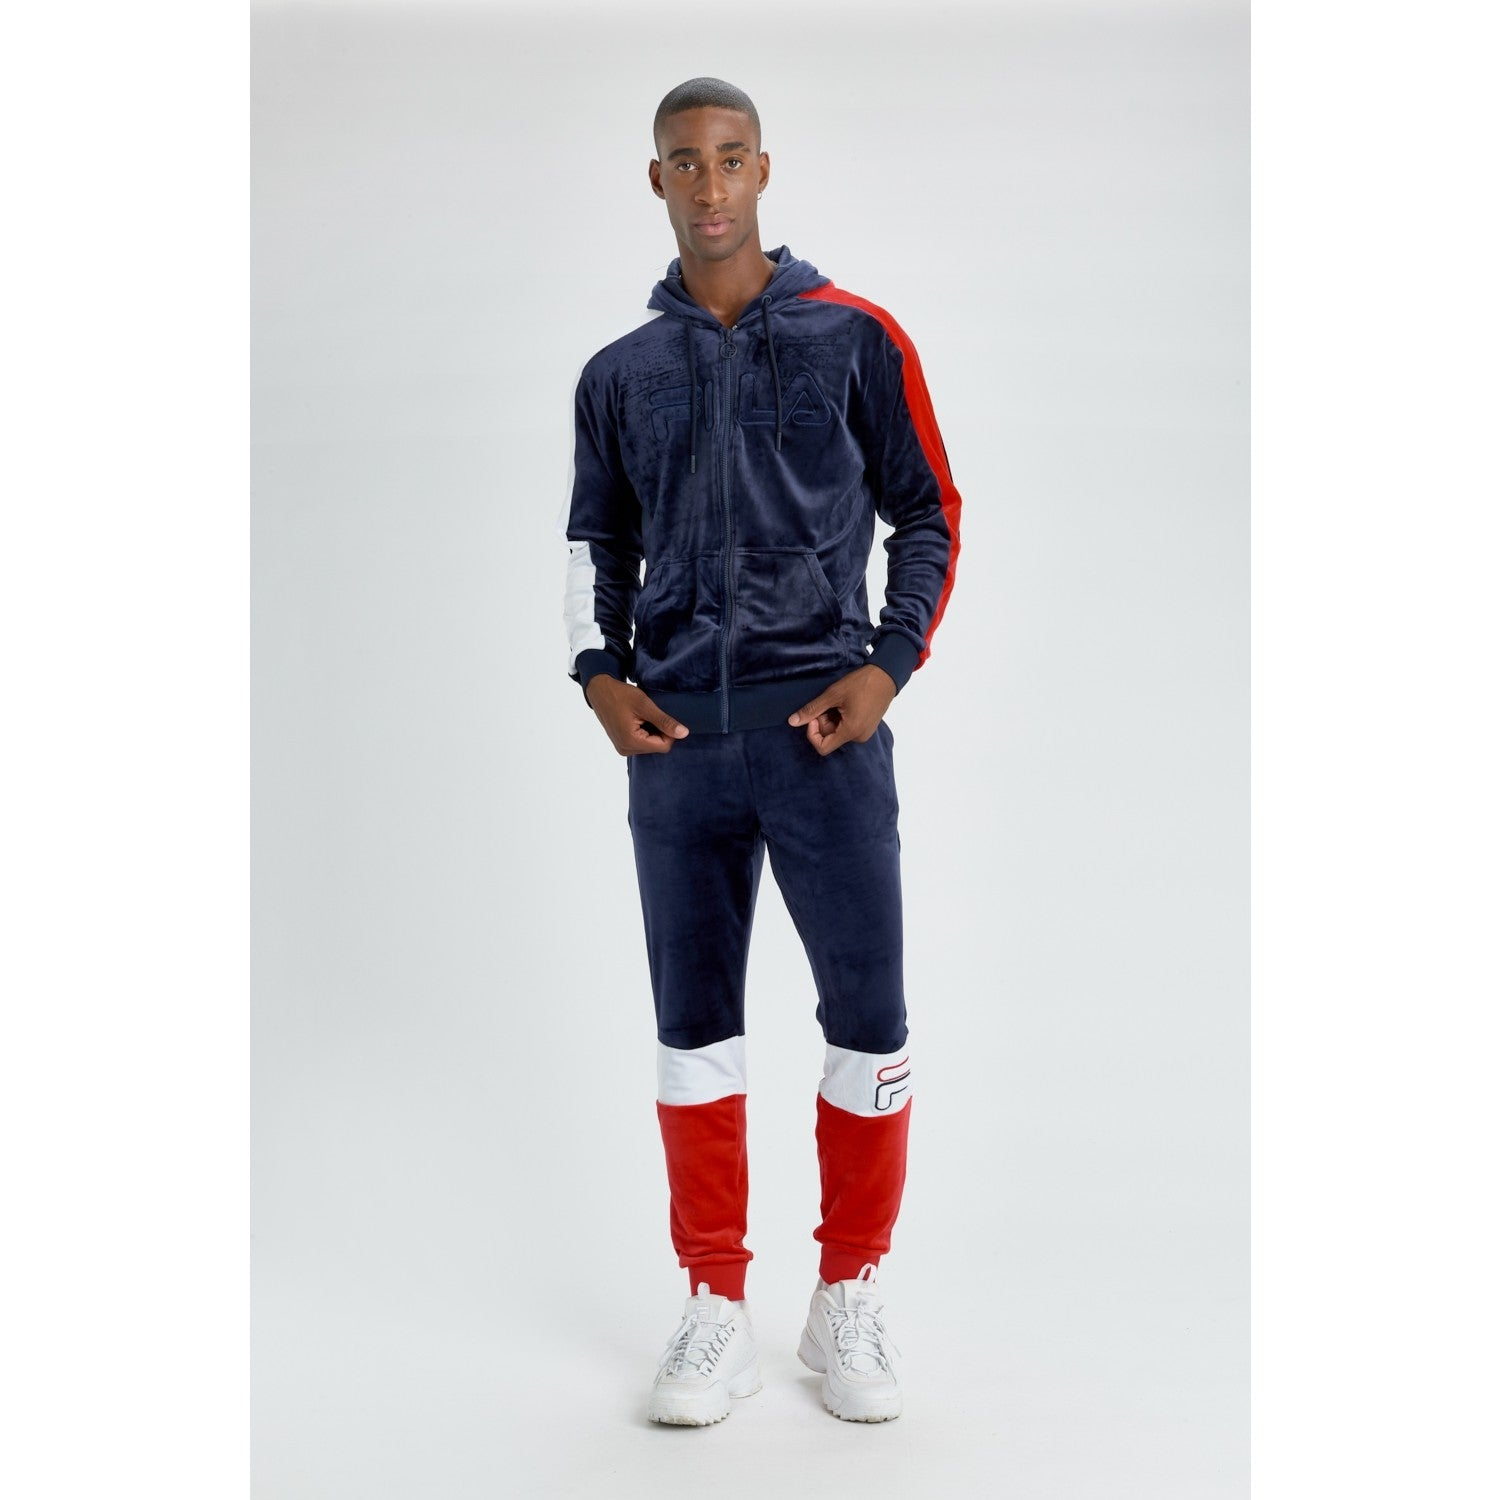 Fila Velour Full Zip Track Top- Navy/Red/White